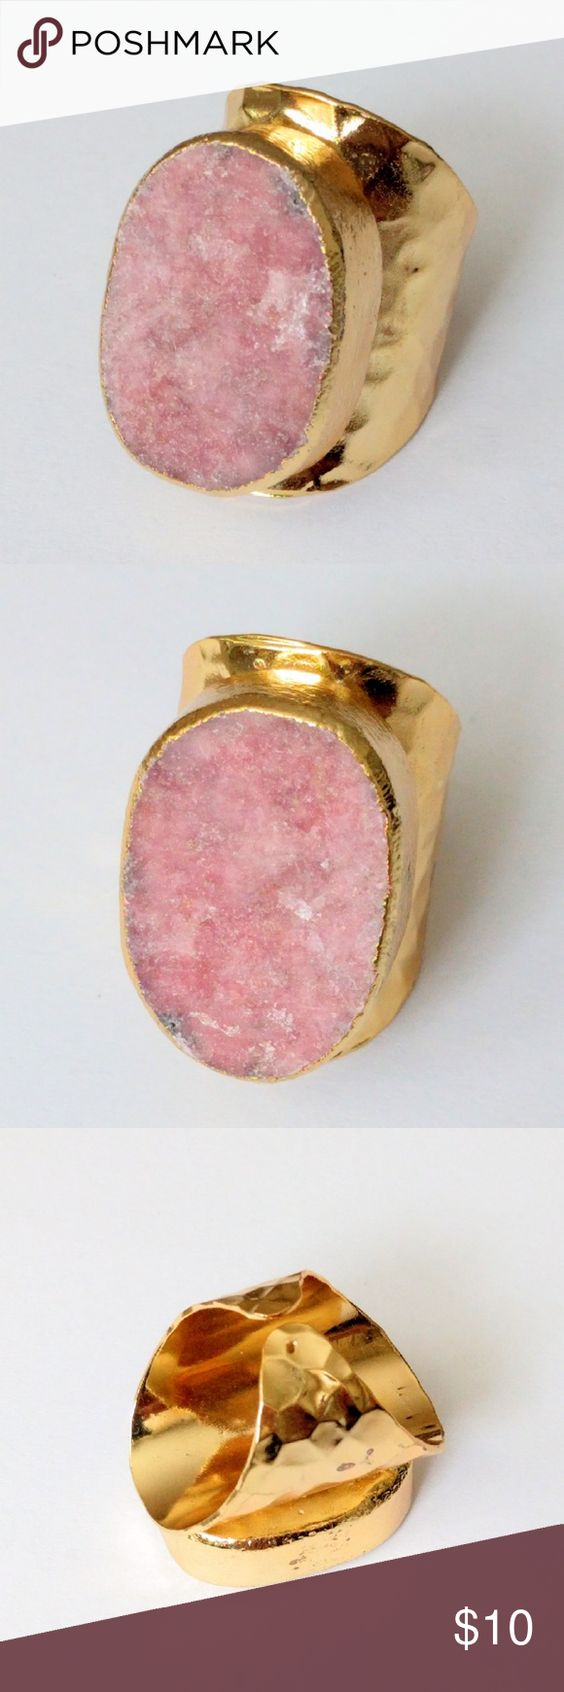 "Genuine pink thulite gold-plated statement ring Wow!  Natural beauty meets a bold, modern design in this impressive gold-plated stunner!  Genuine thulite takes center stage...a gorgeous stone that's an absolute must-see in person!  About a size 7; nickel and lead free.  PRICE IS FIRM and extremely reasonable, but click ""add to bundle"" to save 10% on your purchase of 2+ items! Jewelry Rings"